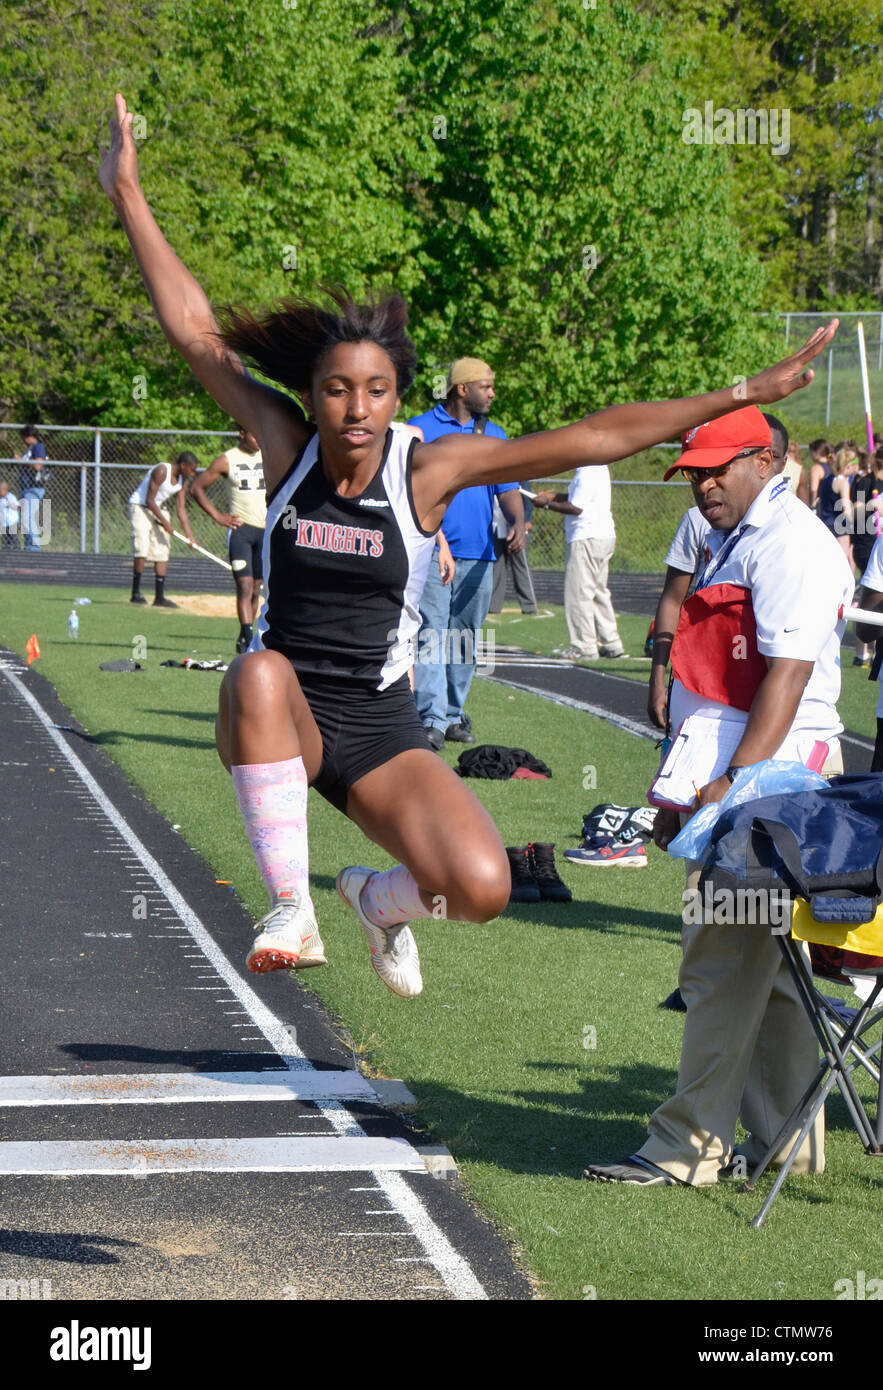 teen doing a high jump during  a high school track and field event in Maryland - Stock Image